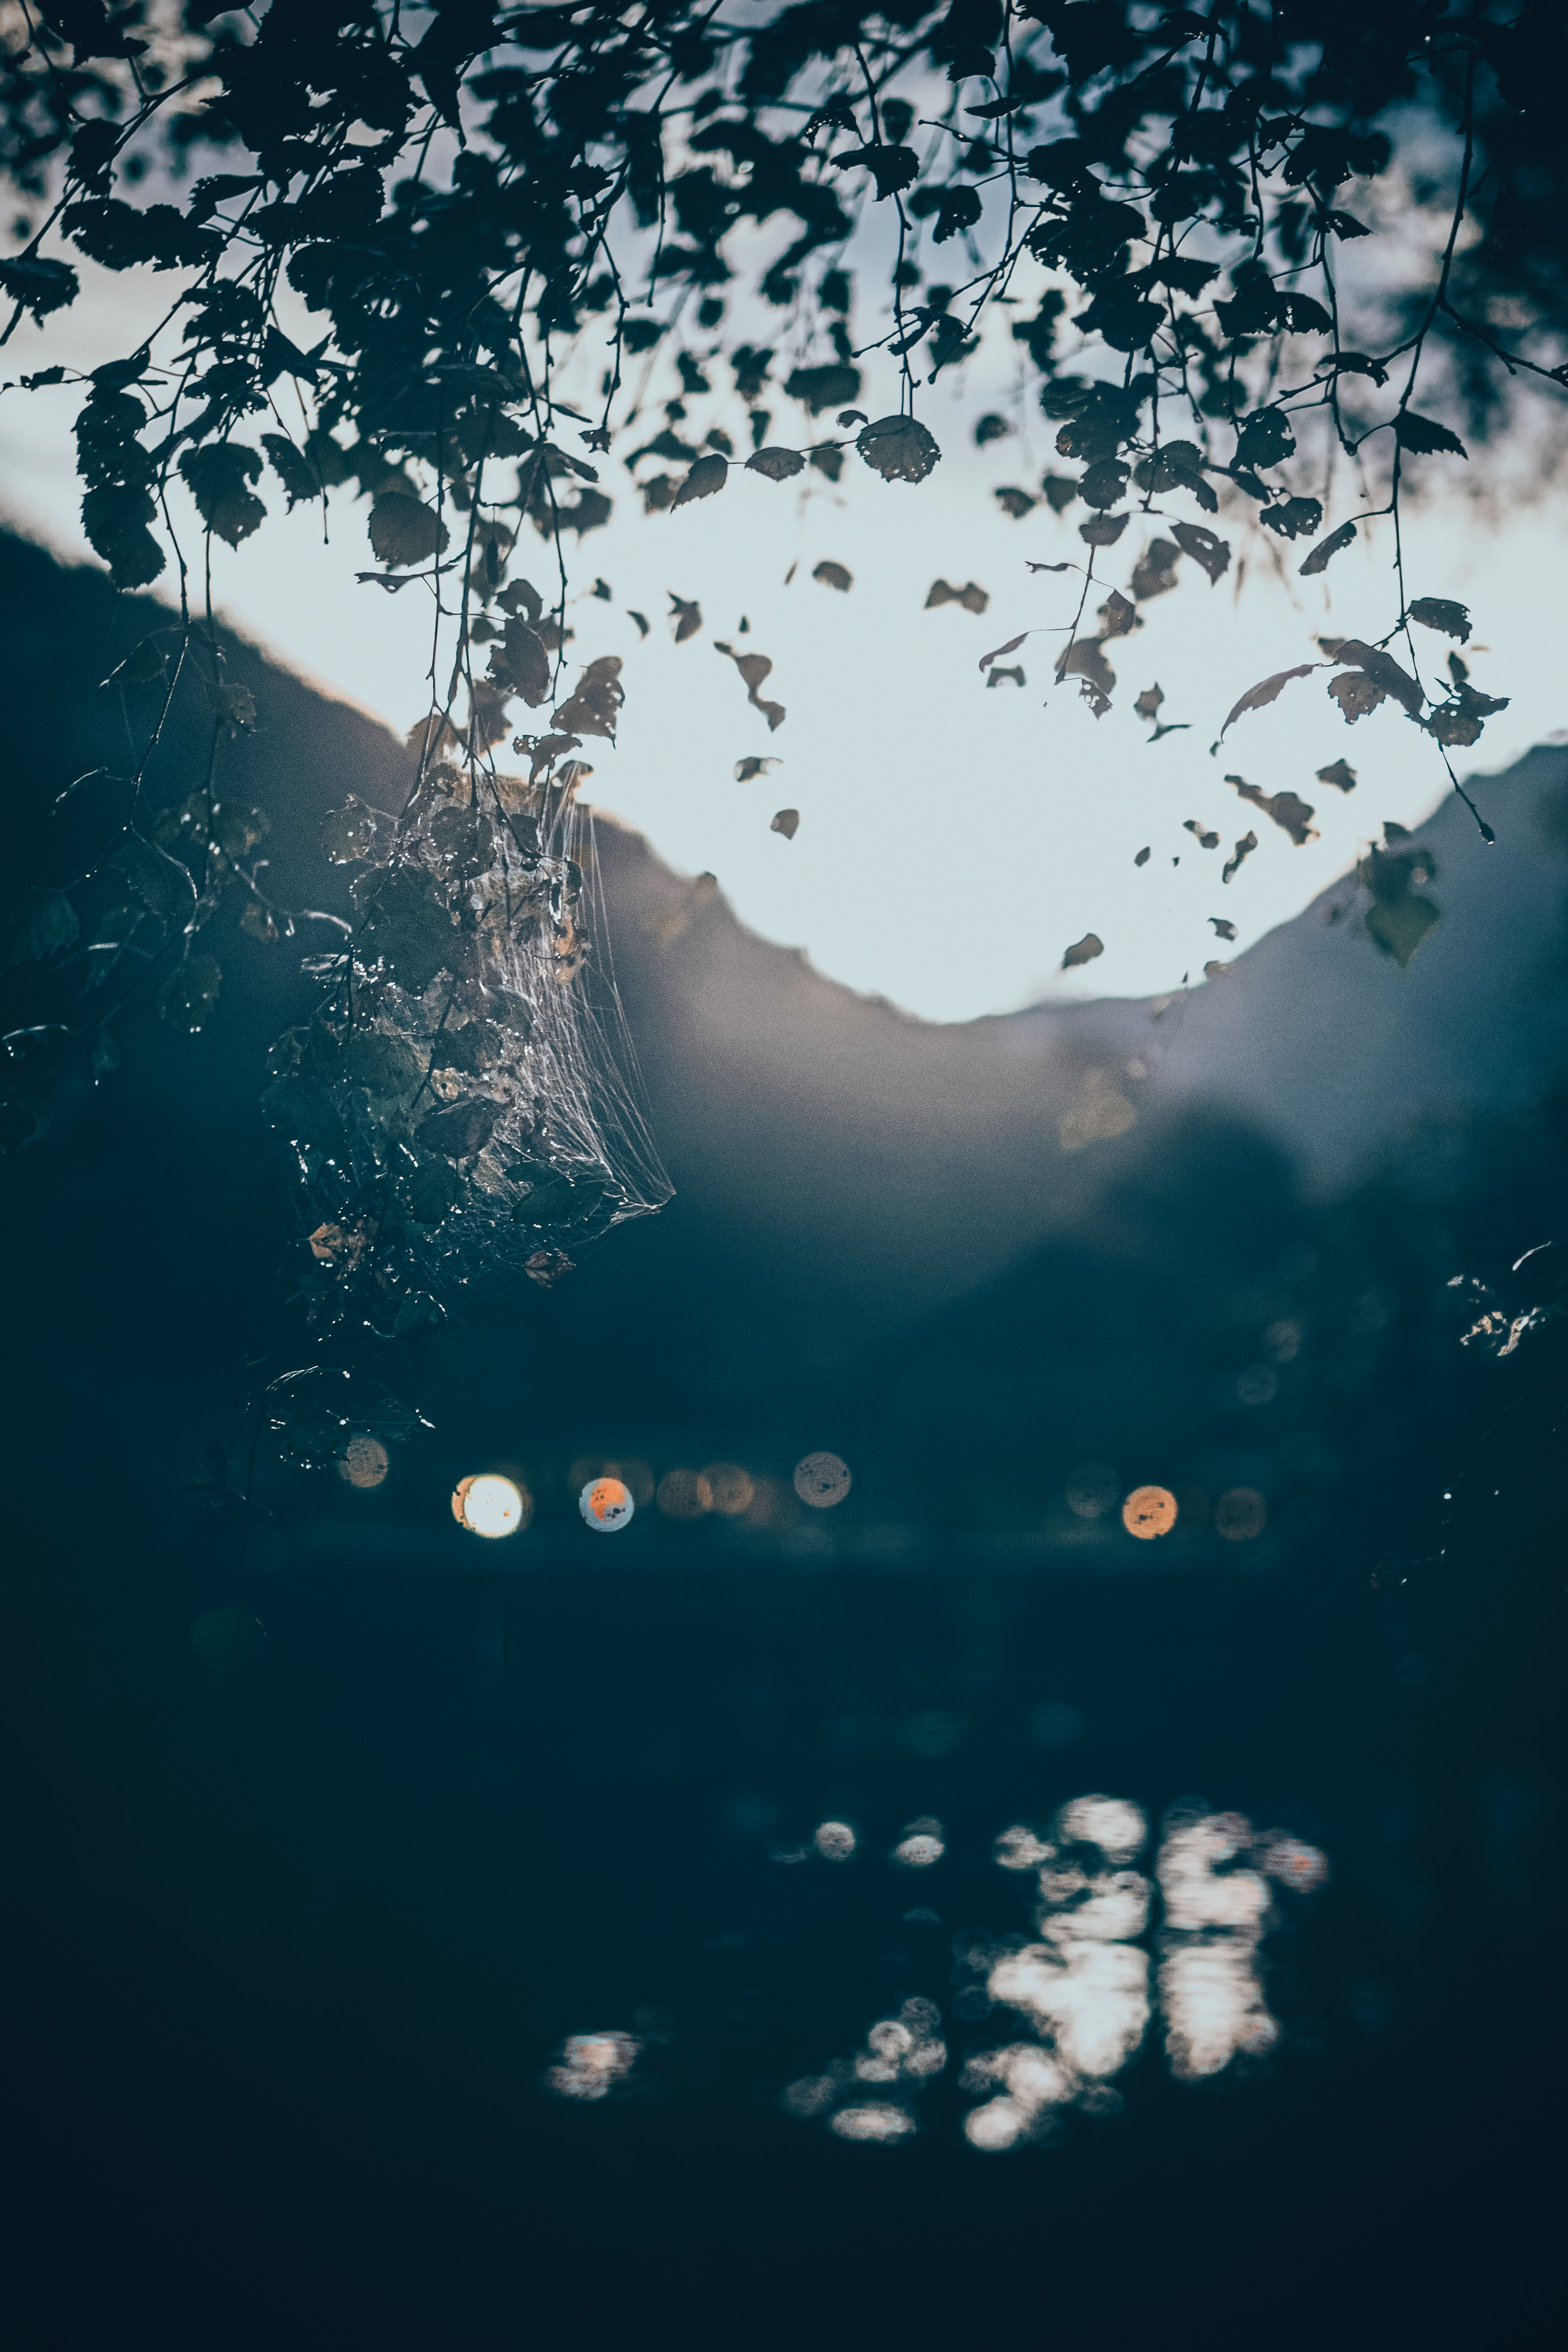 131181 download wallpaper Nature, Branches, Web, Shine, Light, Glare, Bokeh, Boquet, Blur, Smooth screensavers and pictures for free